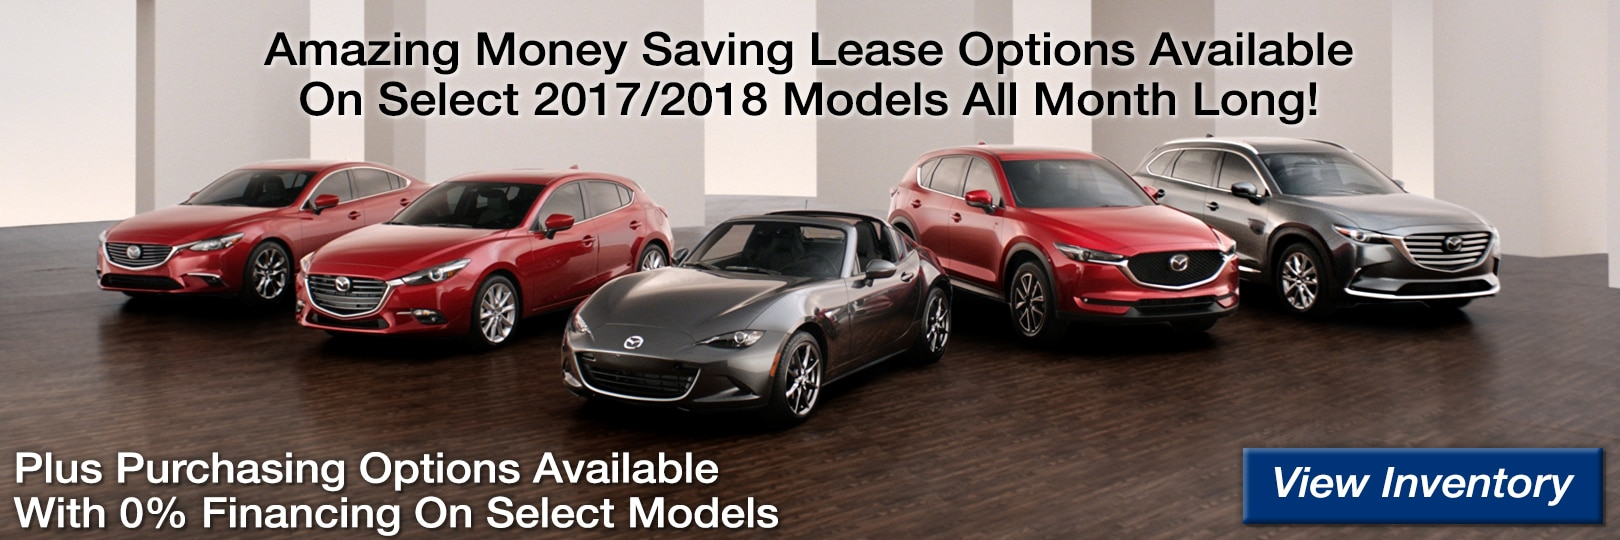 car inventory dealer in brooklyn new york island lease staten mazda for leasing